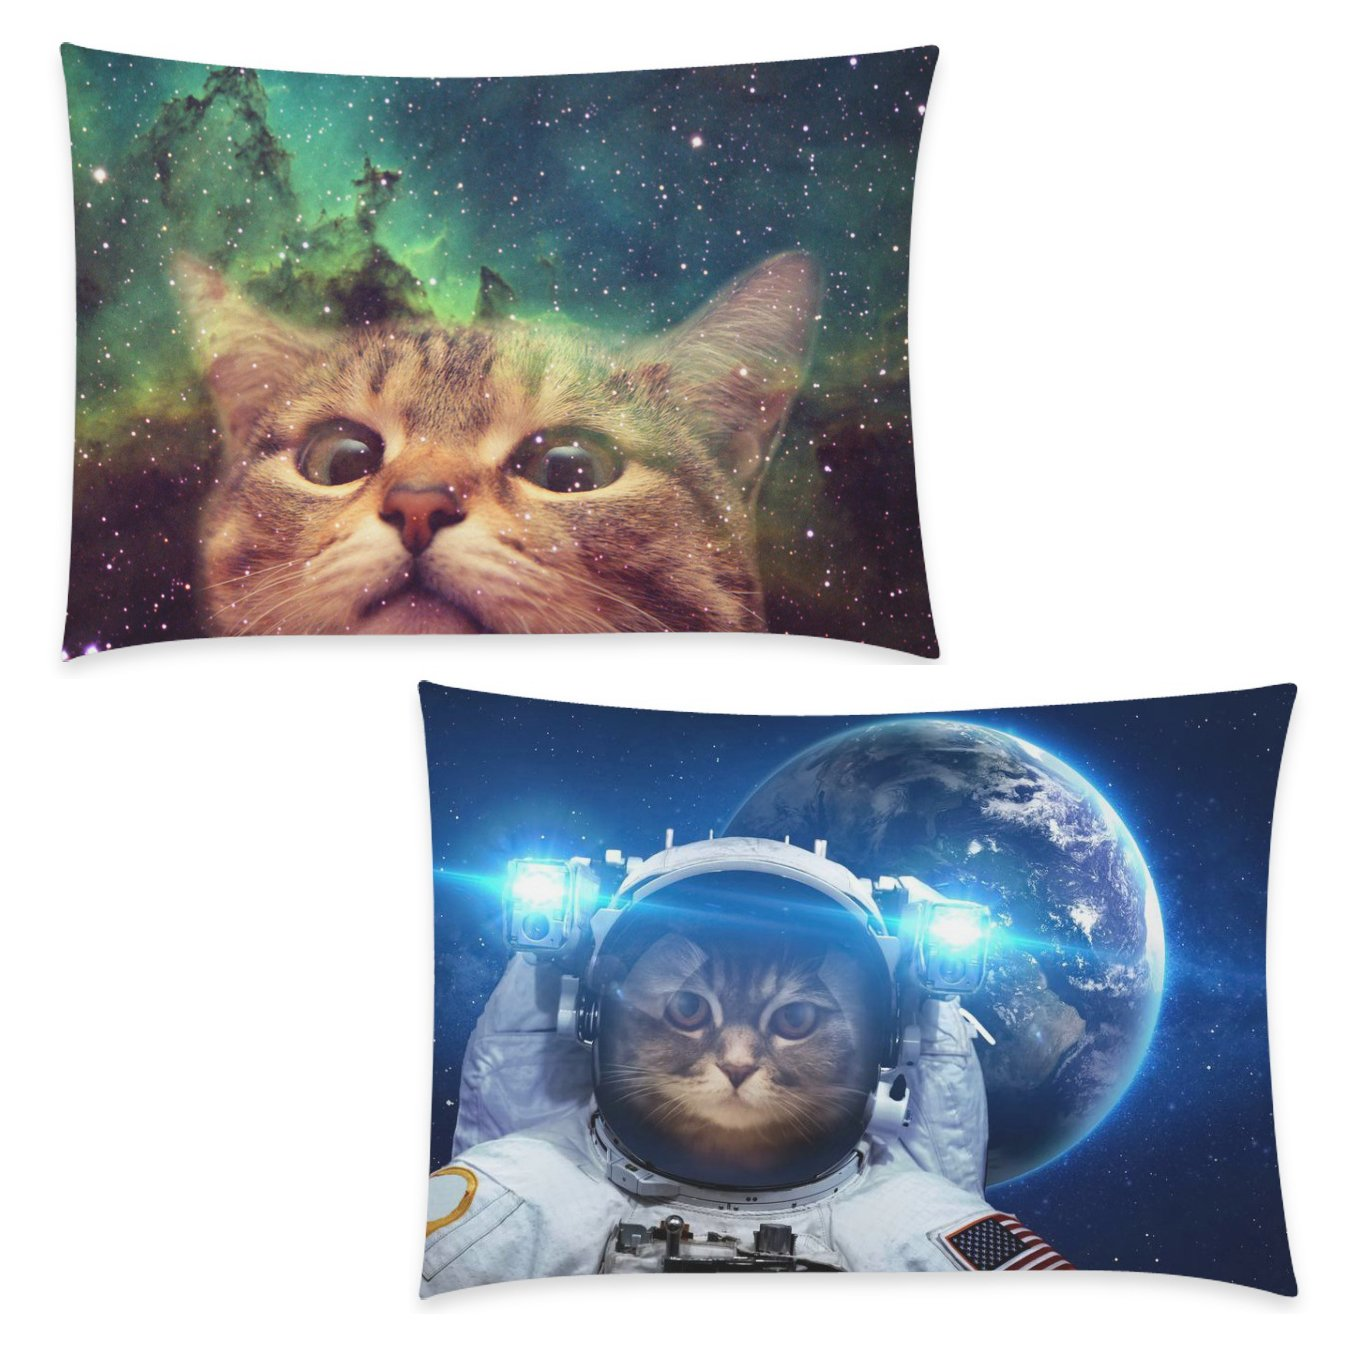 InterestPrint 2 Pack Funny Galaxy Cat Pillow Case Cover 20x30 One Side, Animal Zippered Pillowcase Set Decoration